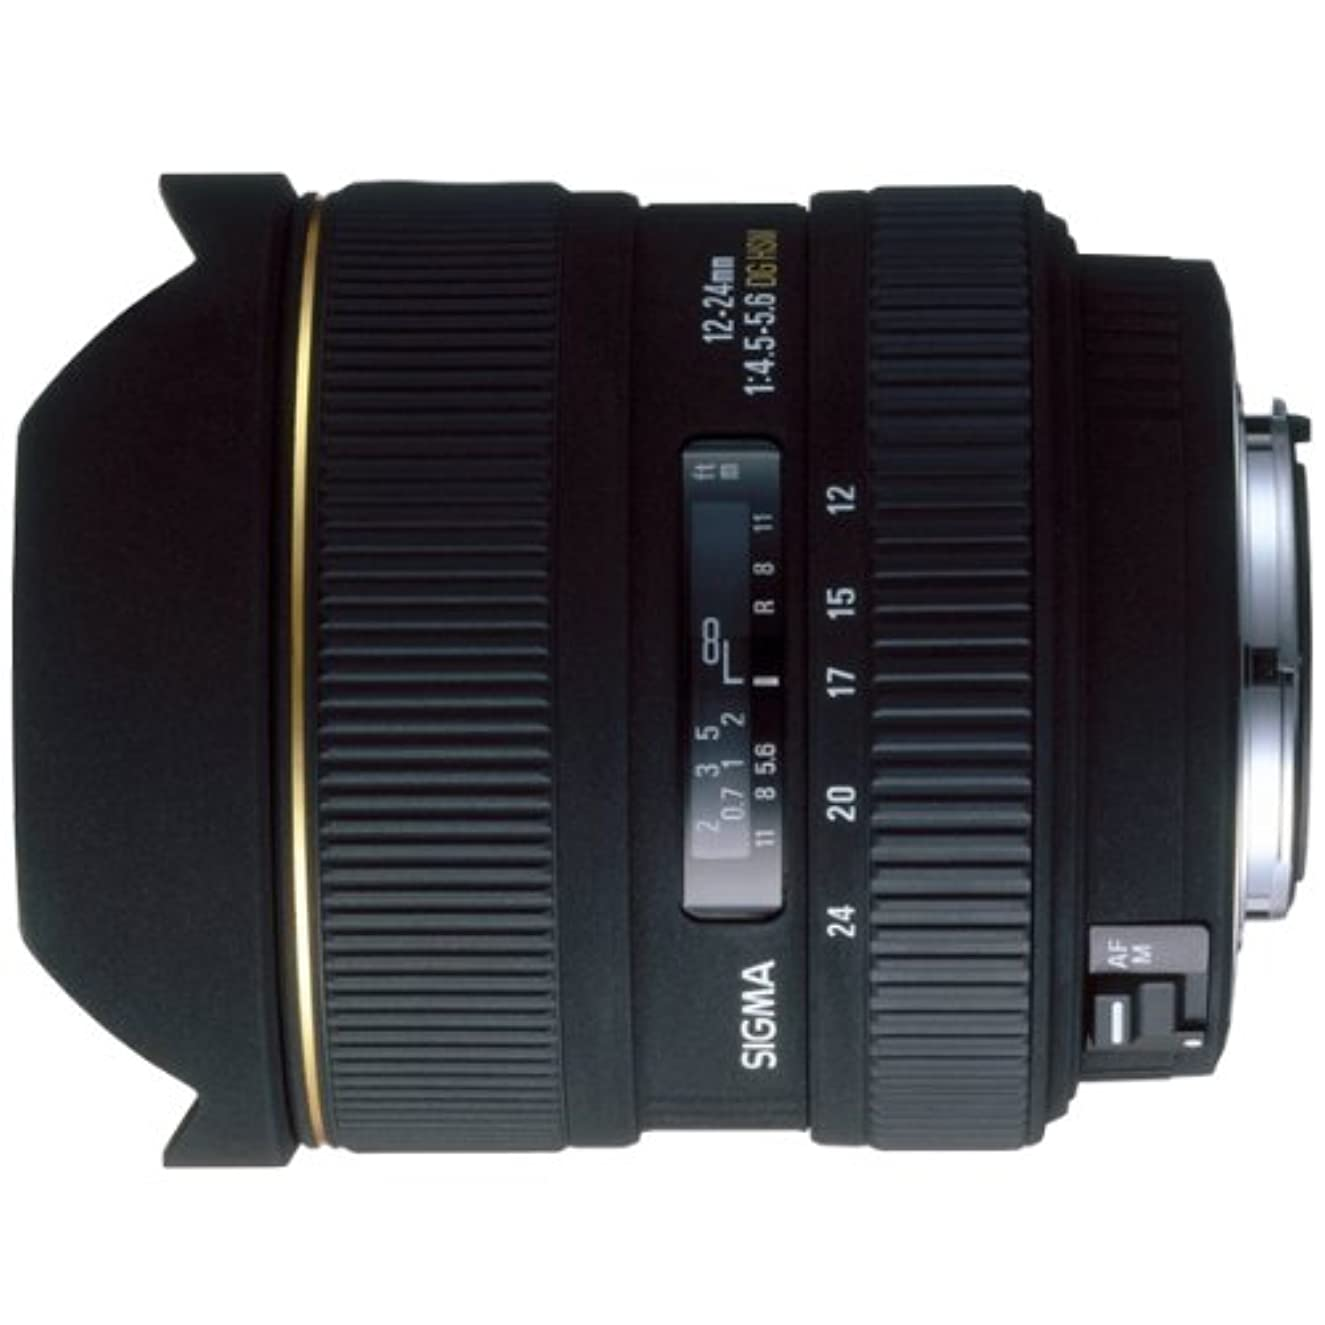 Sigma 12-24mm f/4.5-5.6 EX DG IF HSM Aspherical Ultra Wide Angle Zoom Lens for Pentax and Samsung SLR Cameras